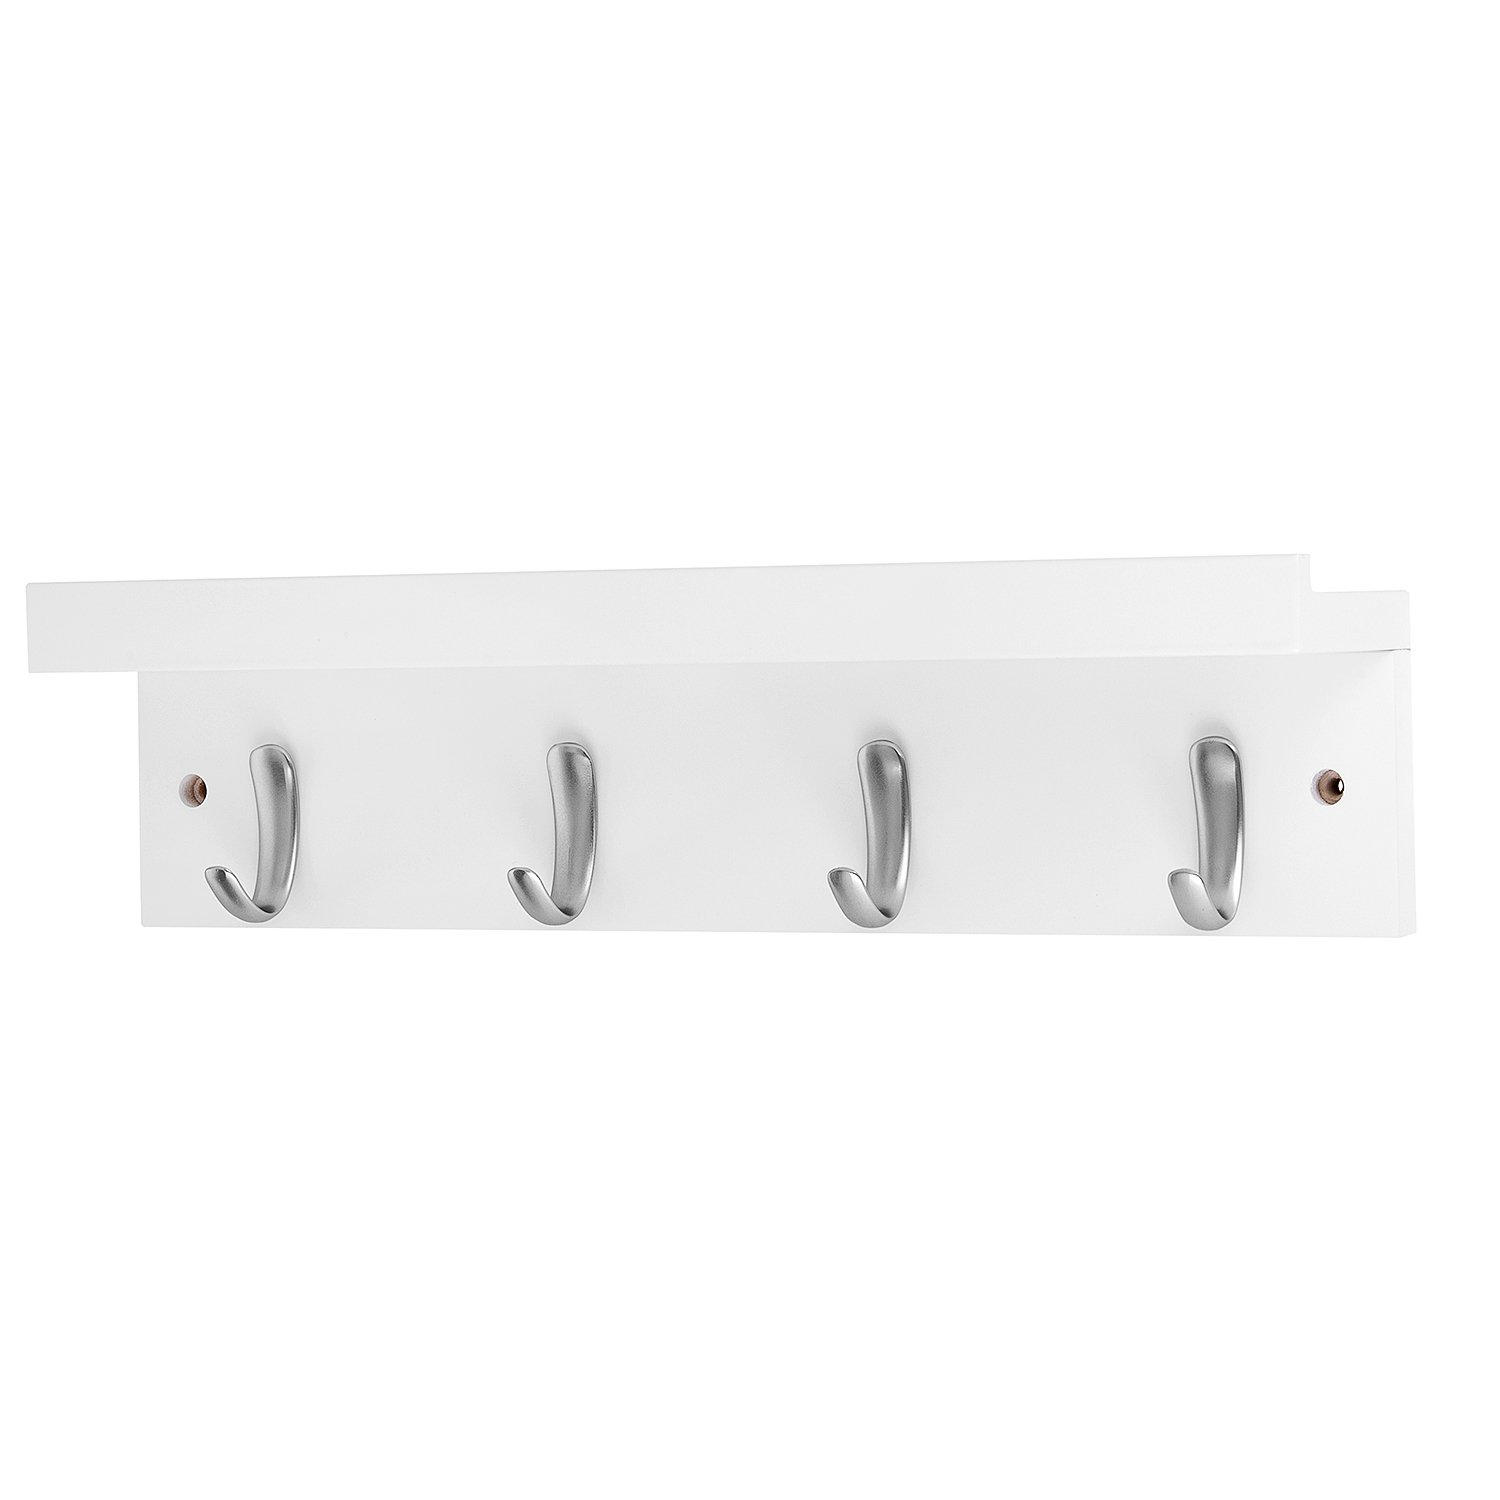 DOKEHOM DKH0184WE 4-Satin Nickel Hooks (4 Colors) on Wooden Board with Shelf Coat Rack Hanger, Mail Box Packing (White)